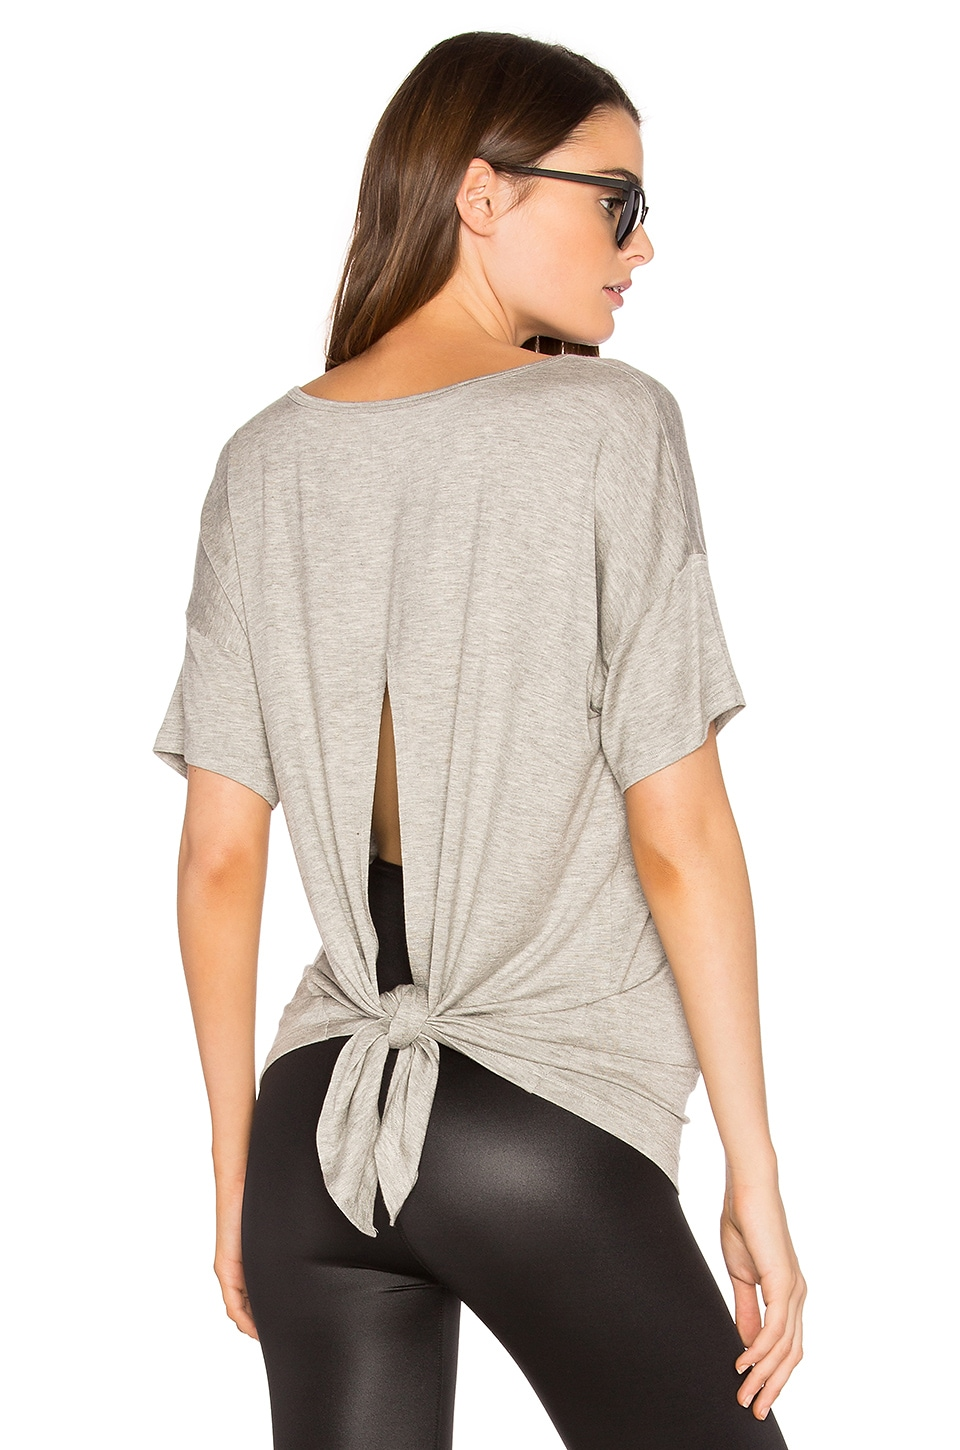 Beyond Yoga Roll the Slice Tee in Heather Gray